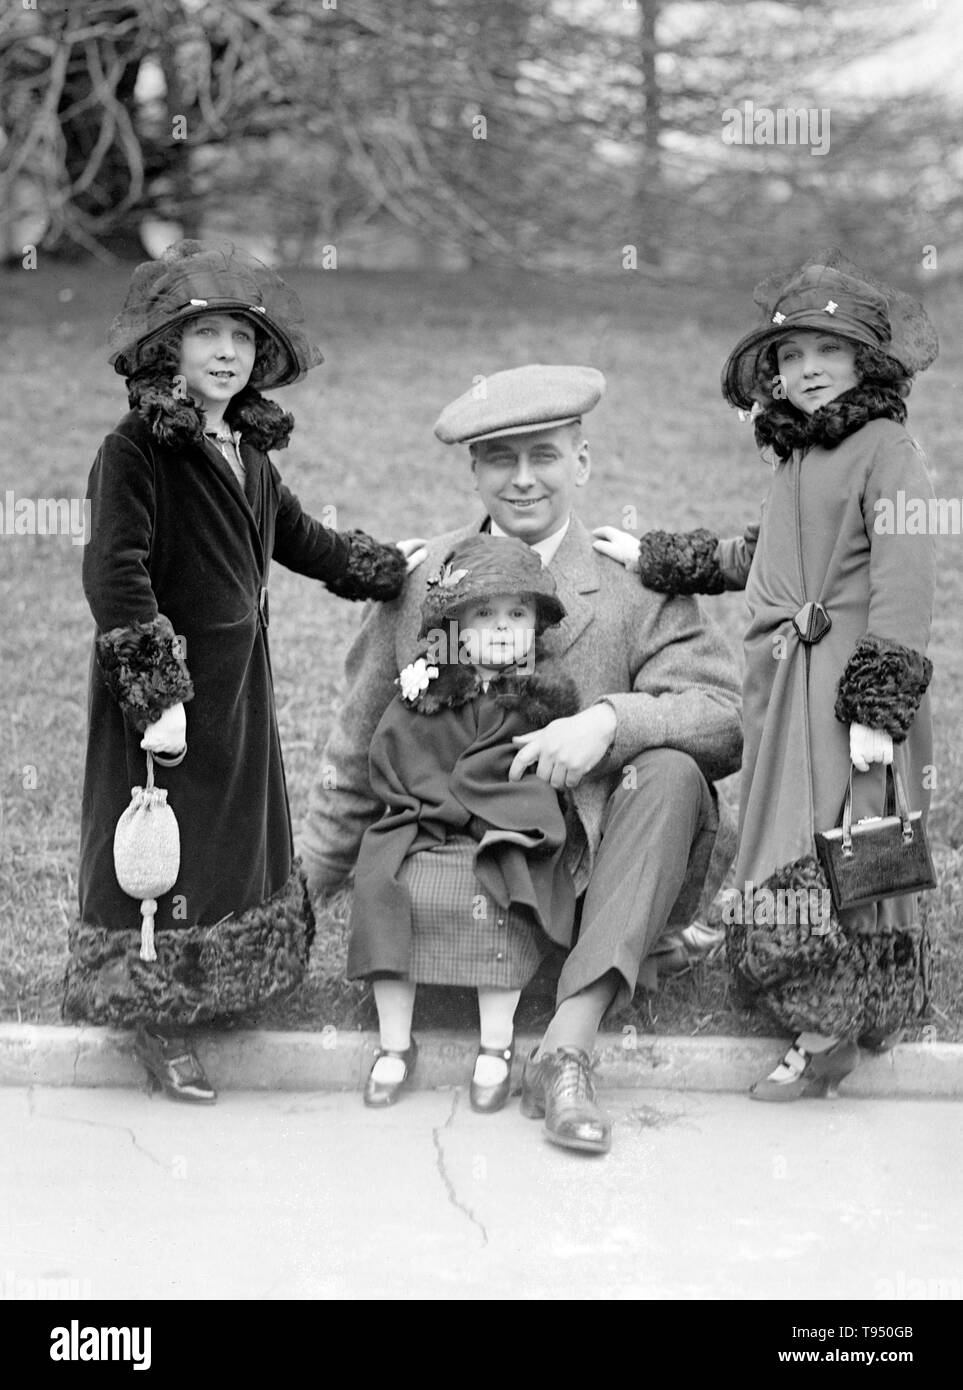 Entitled: 'Roland Robbins, manager of B.F. Keith's Theatre accompanied these little people to the White House. They have appeared in almost every country in the world.' Singer's Midgets were a popular vaudeville group in the first half of the 20th century. Leopold von Singer (May 3, 1877 - March 5, 1951) formed Singer's Midgets in 1912-13, and built the Liliputstadt, a 'midget city' at the 'Venice in Vienna' amusement park, where they performed. The Liliputstadt was a major success, Singer began to tour with his performers throughout Europe and, in the process, recruited new members. After WWI - Stock Image